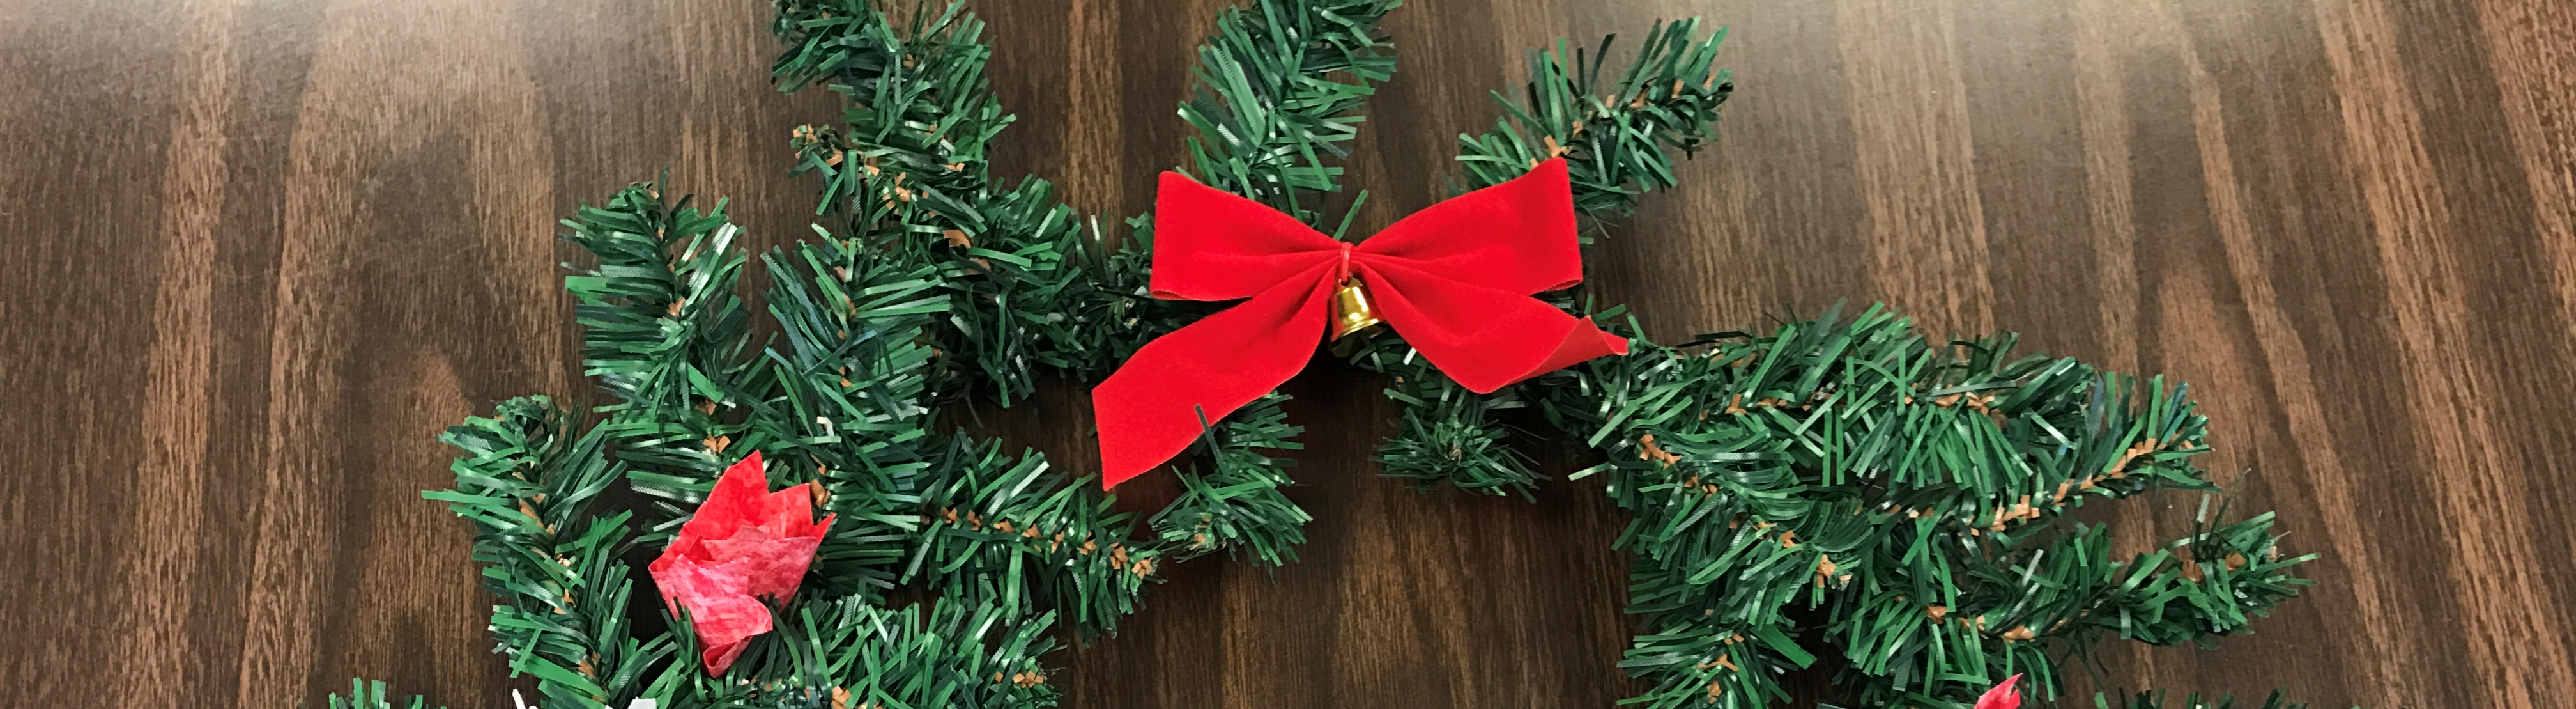 Christmas fabric wreath with bow